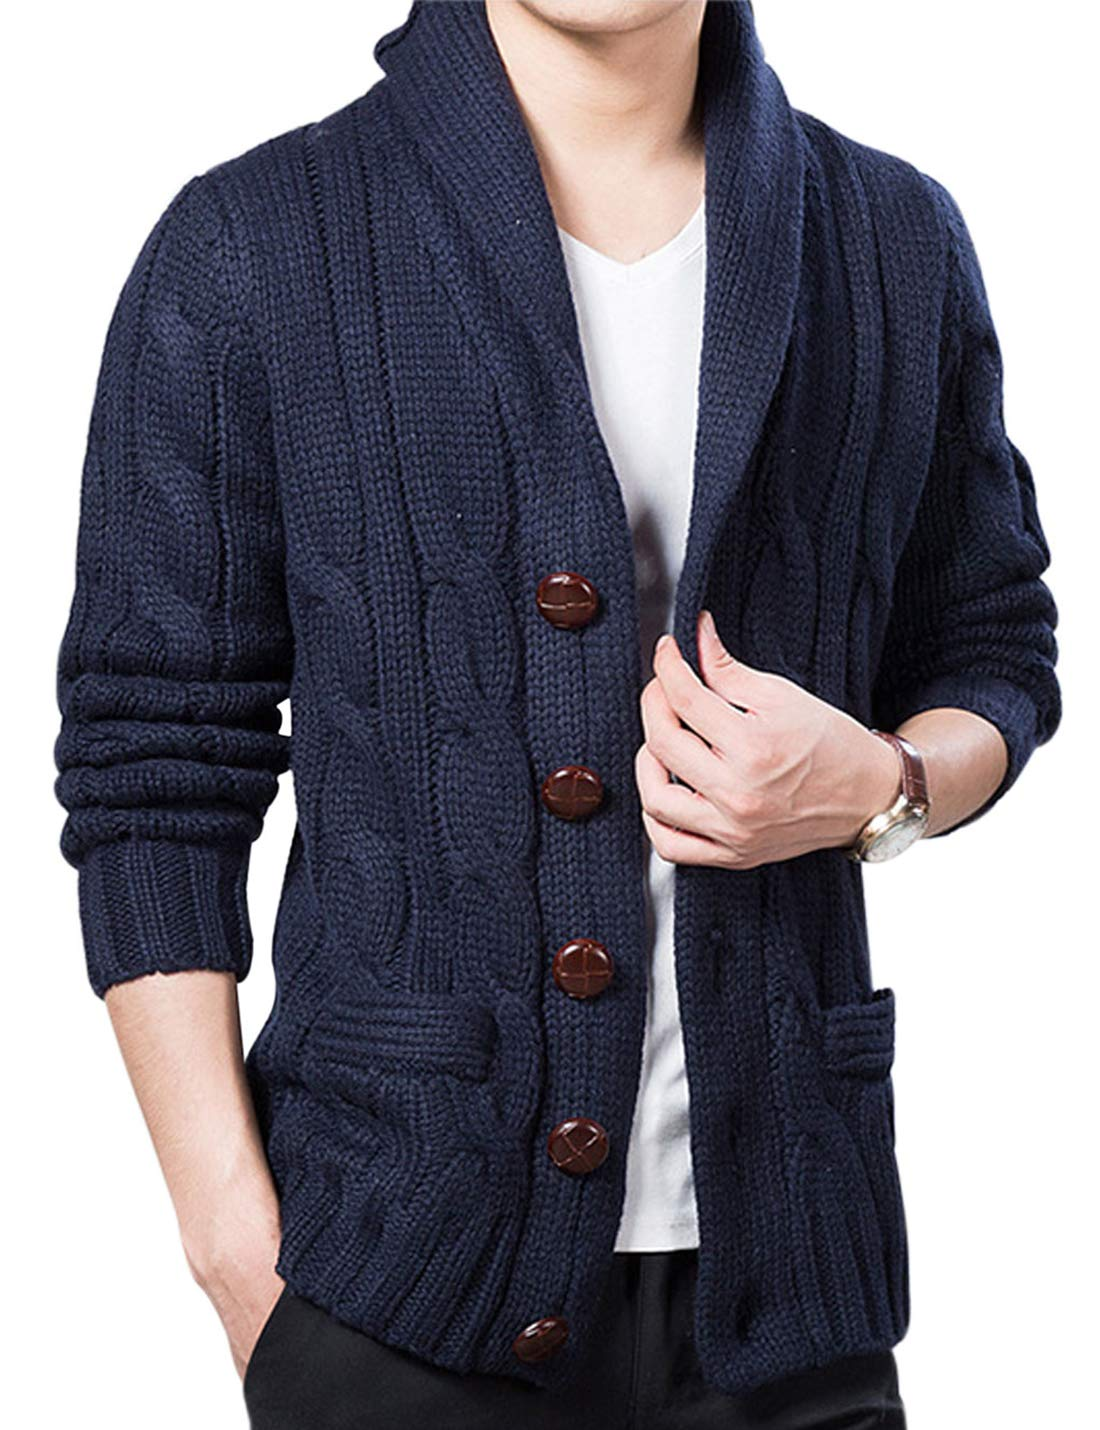 Lentta Mens Heavy Weight Shawl Collar Button Down Cable Knitted Cardigan Sweater (Medium, Dark Blue)